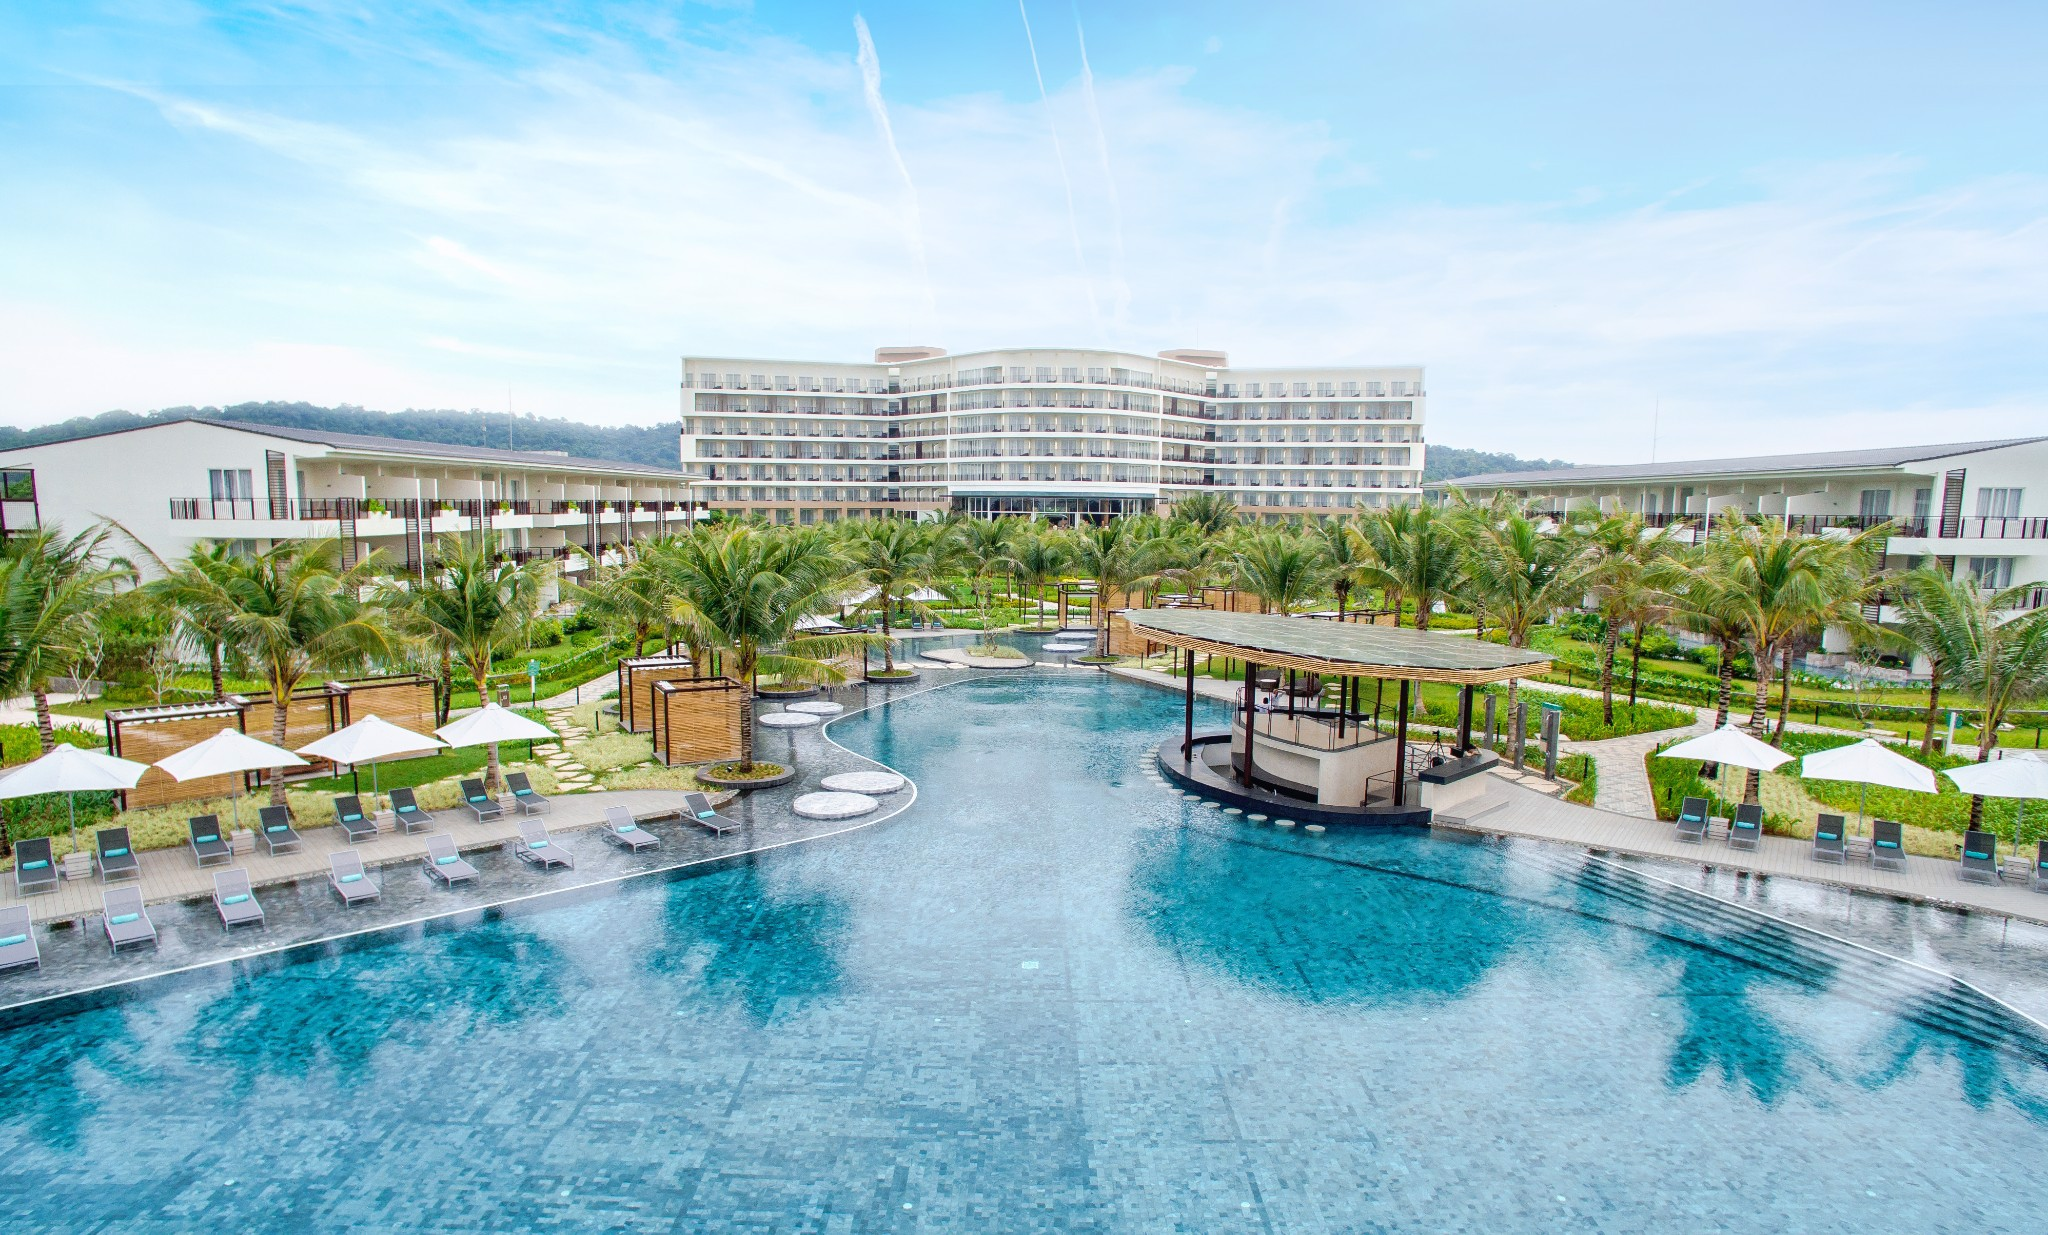 FANTASEA TRAVEL | VOUCHER SOL BEACH HOUSE PHÚ QUỐC 2N1Đ